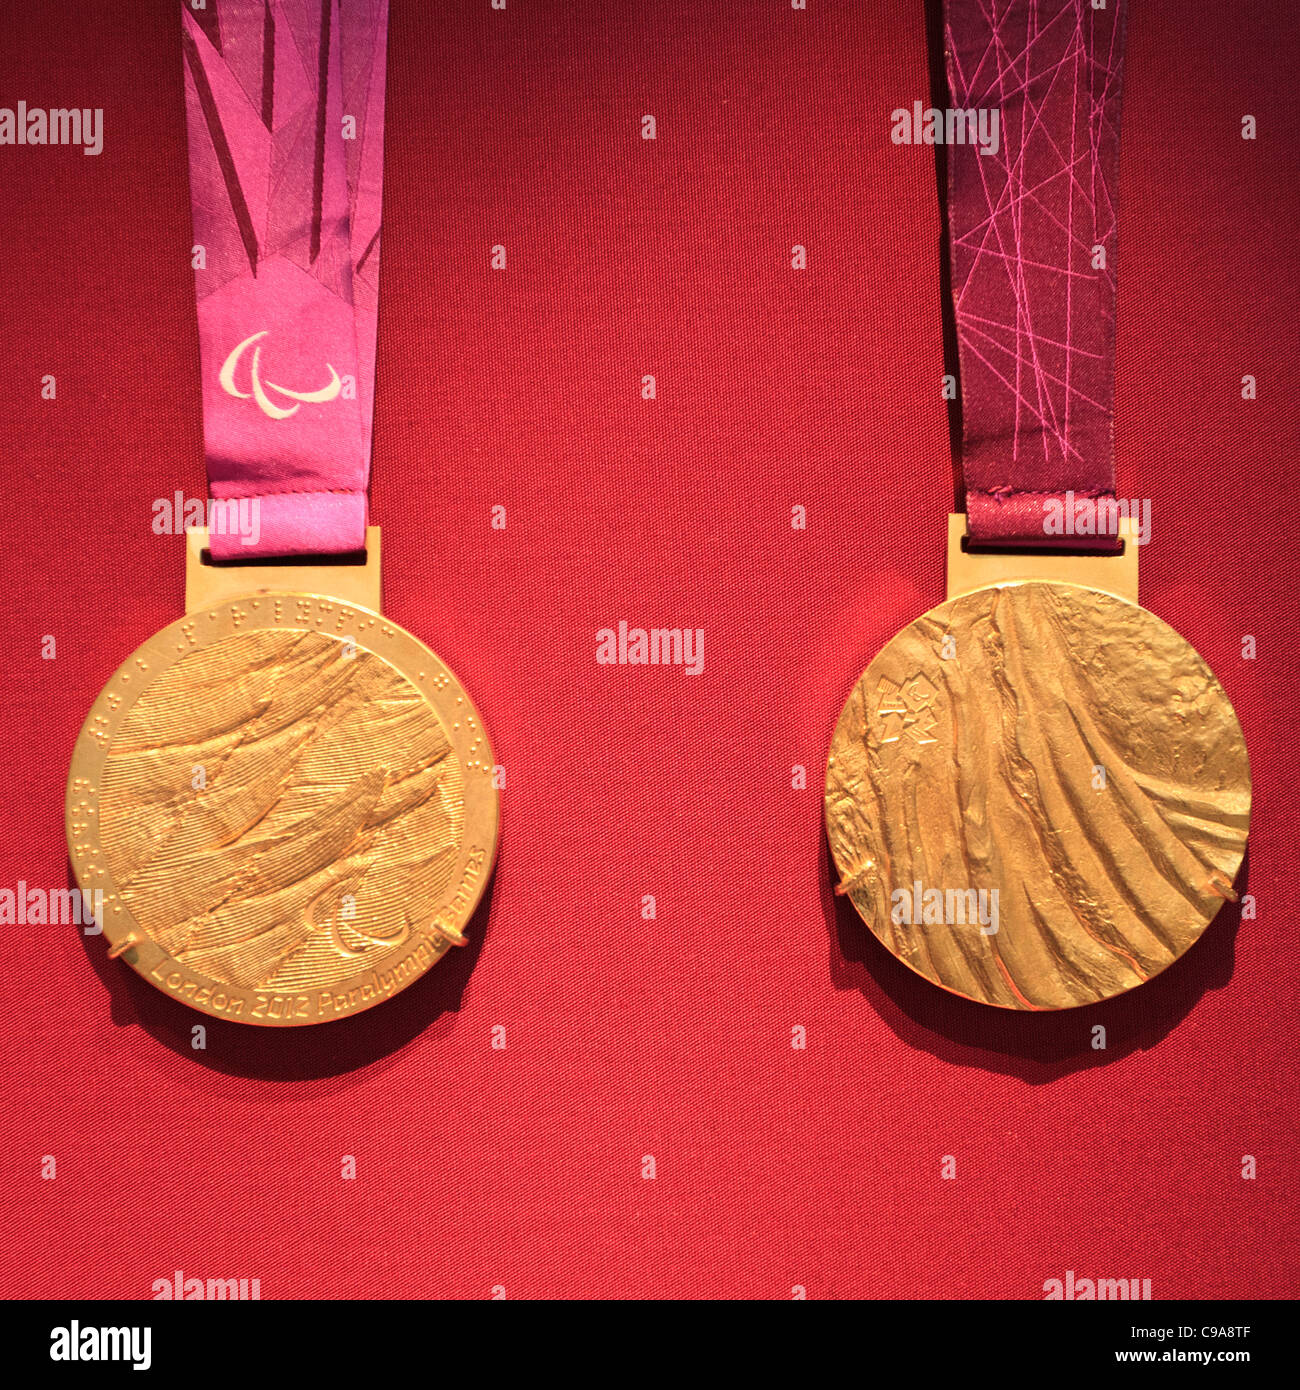 London 2012 Paralympic Gold Medals - Stock Image